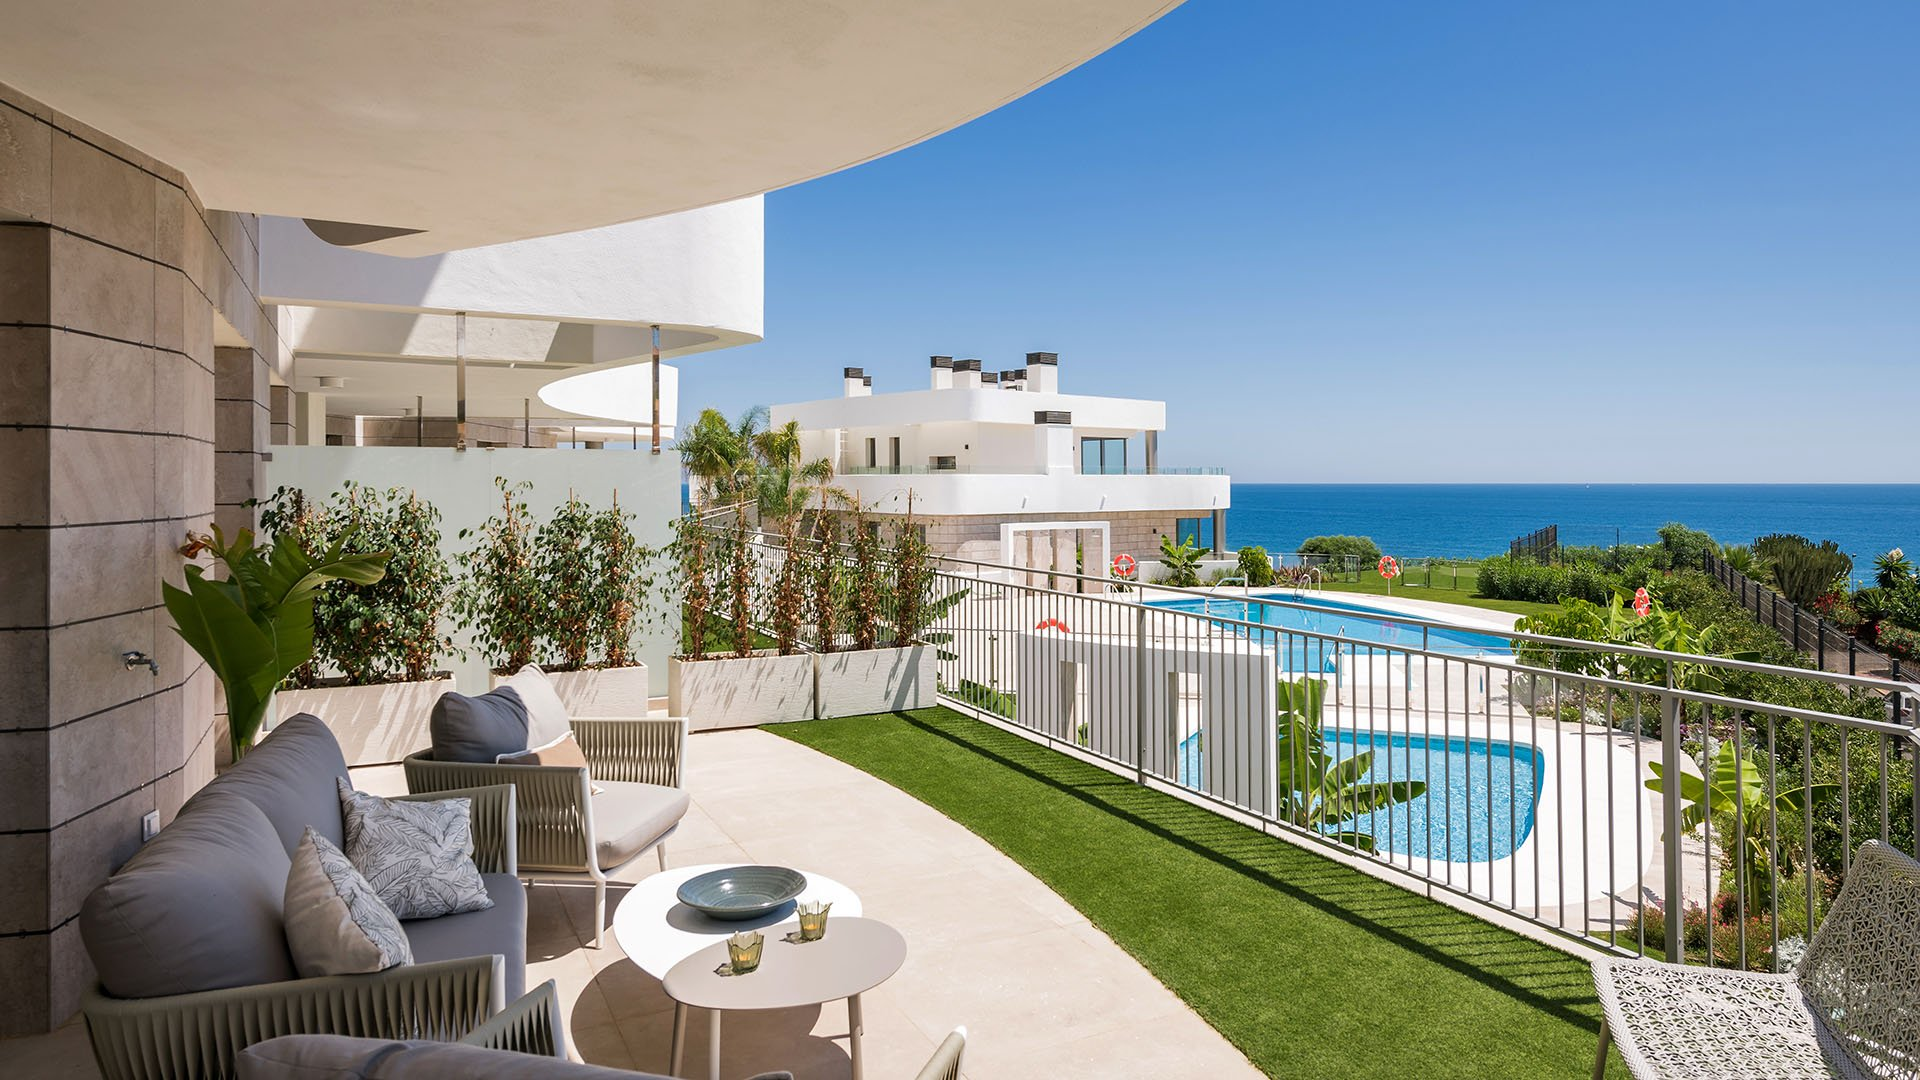 Aria: Penthouses with incredible sea view in Mijas Costa